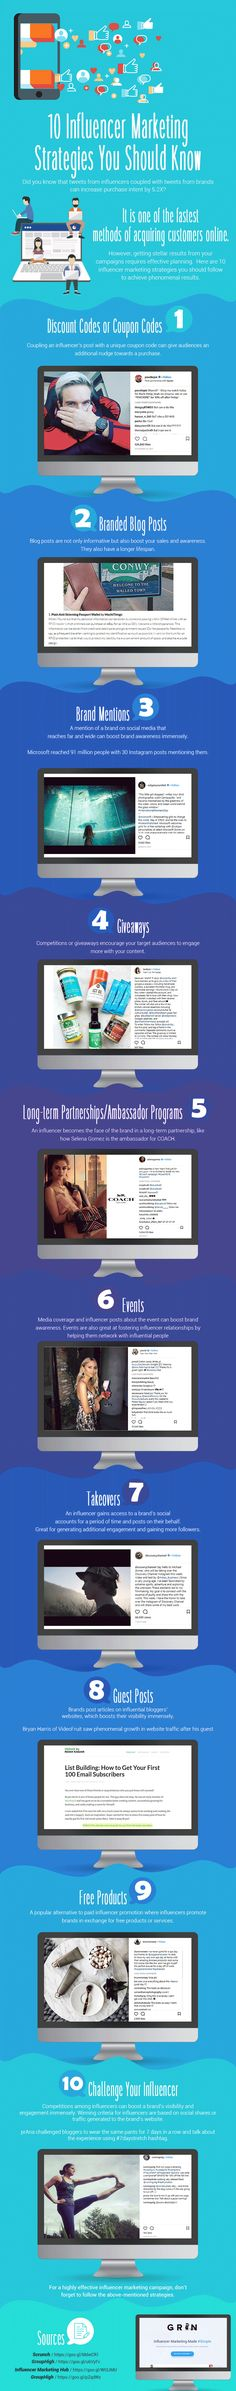 10 Influencer Marketing Strategies You Should Know [Infographic]   Social Media Today